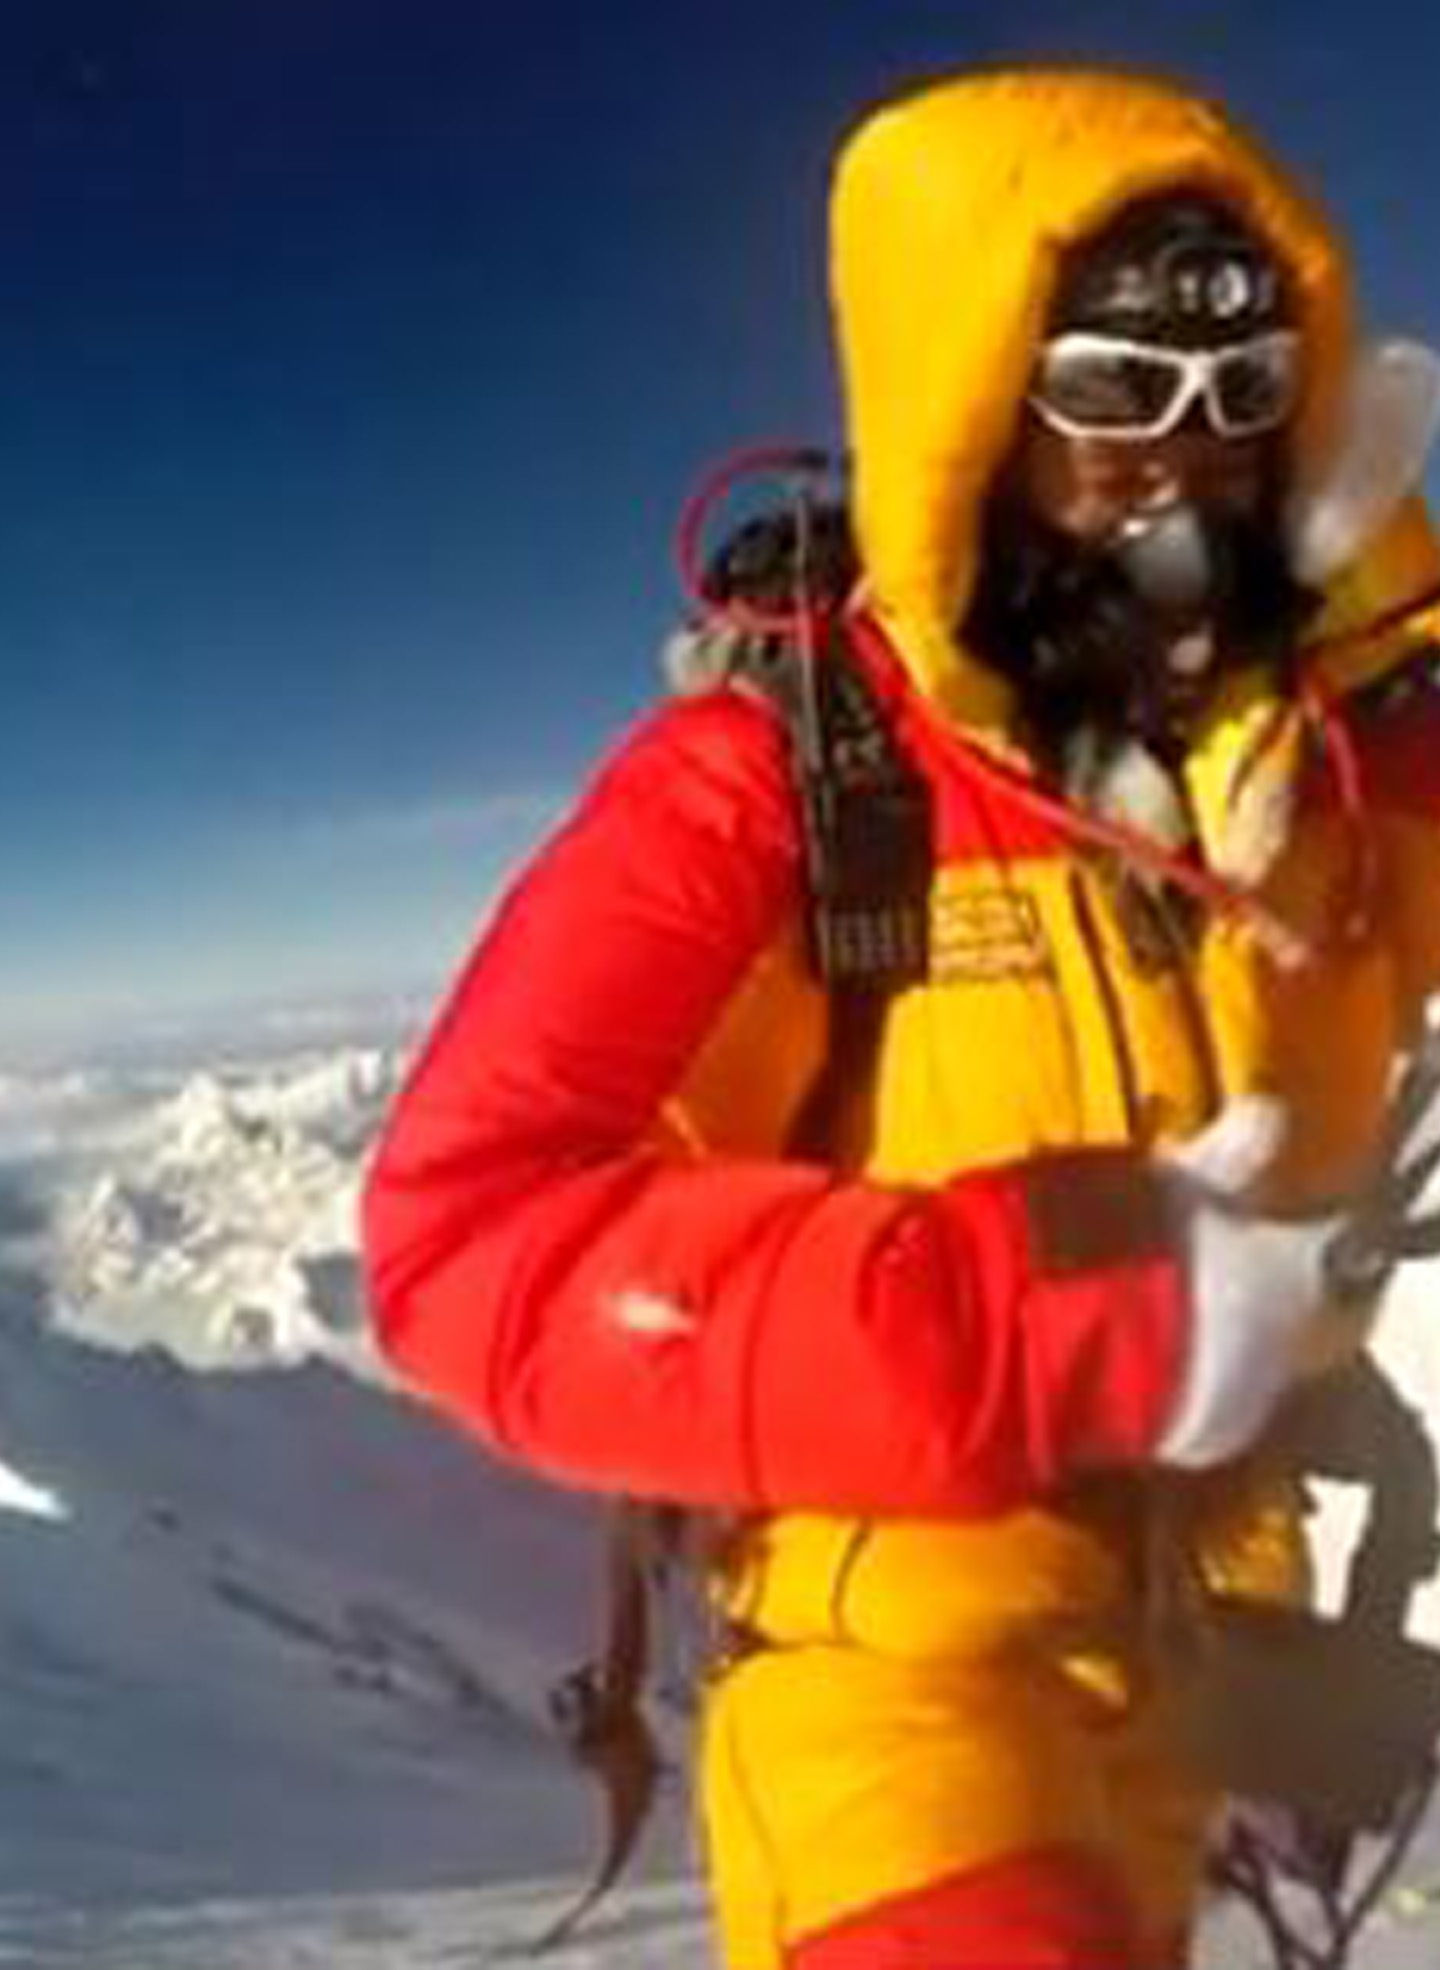 sherpa Mount Everest.JPG